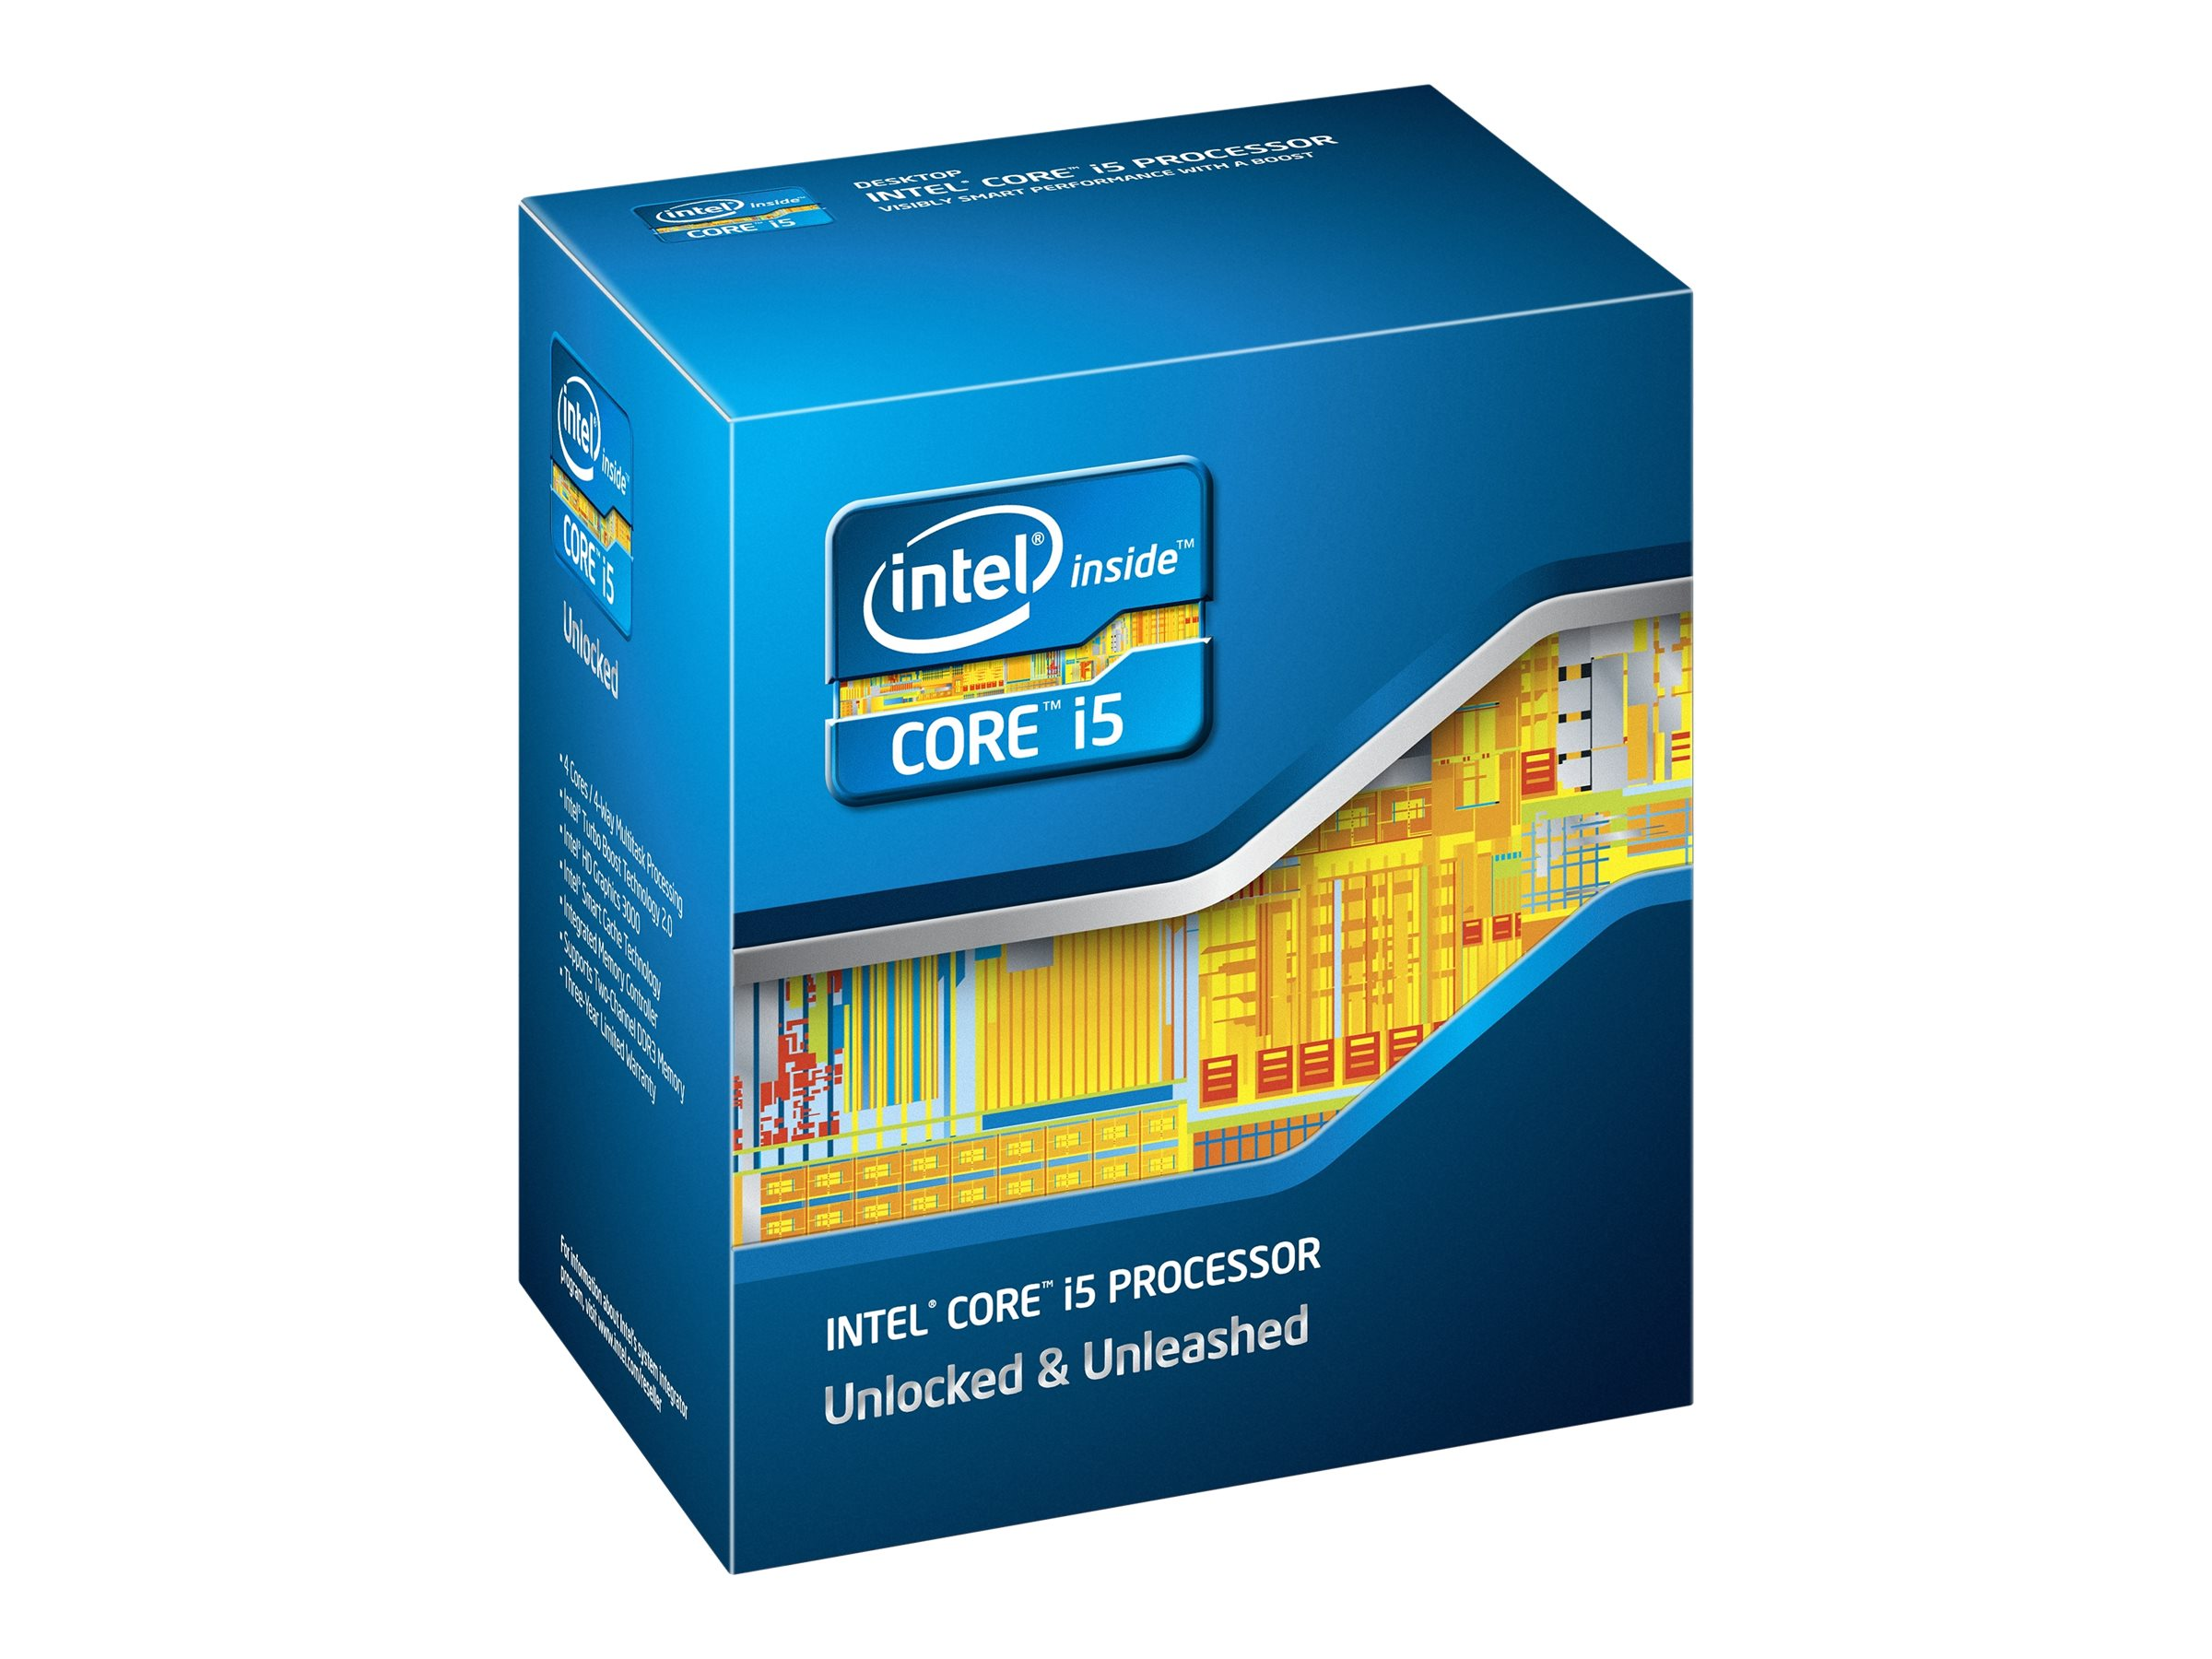 Intel Processor, Core i5-2380P 3.1GHz 6MB 95W, BX80623I52380P